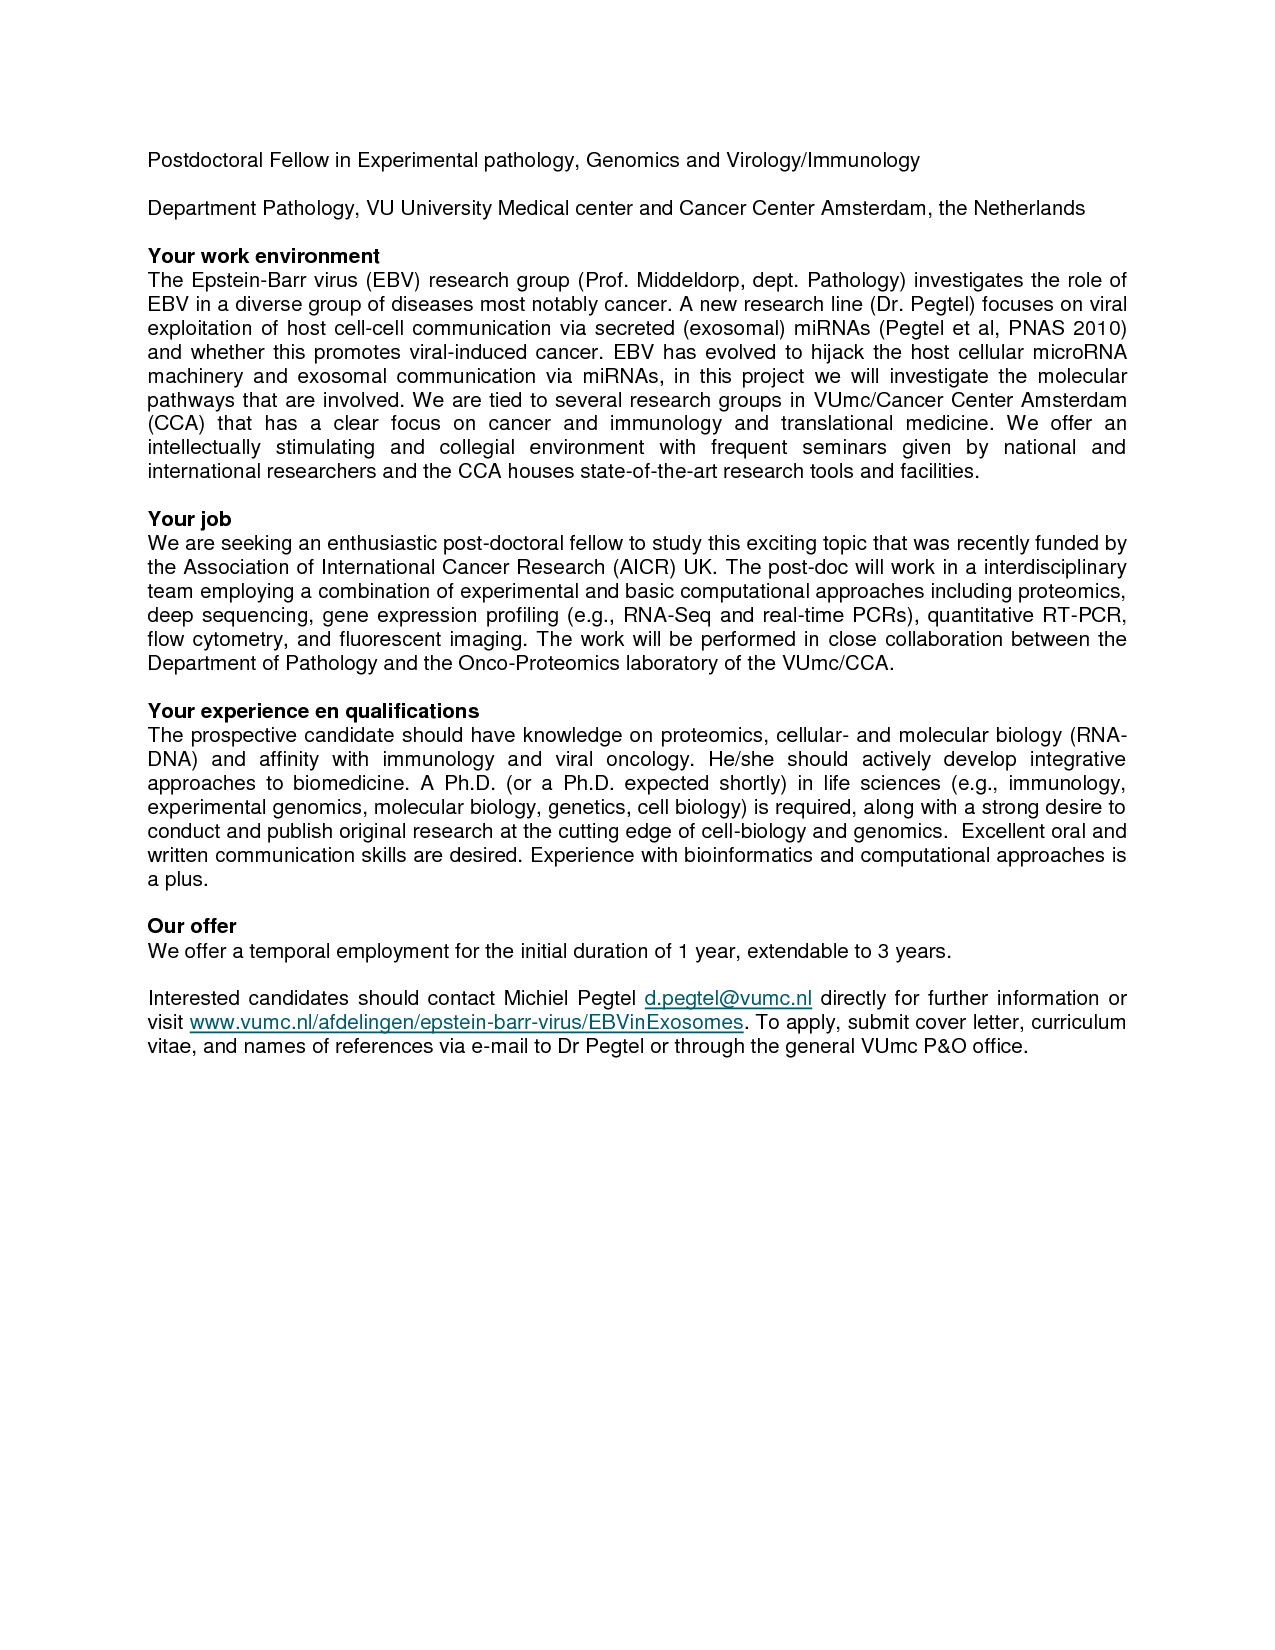 Postdoc Cover Letter Template - Application Letter Sample Biology Postdoc Cover Letter Example